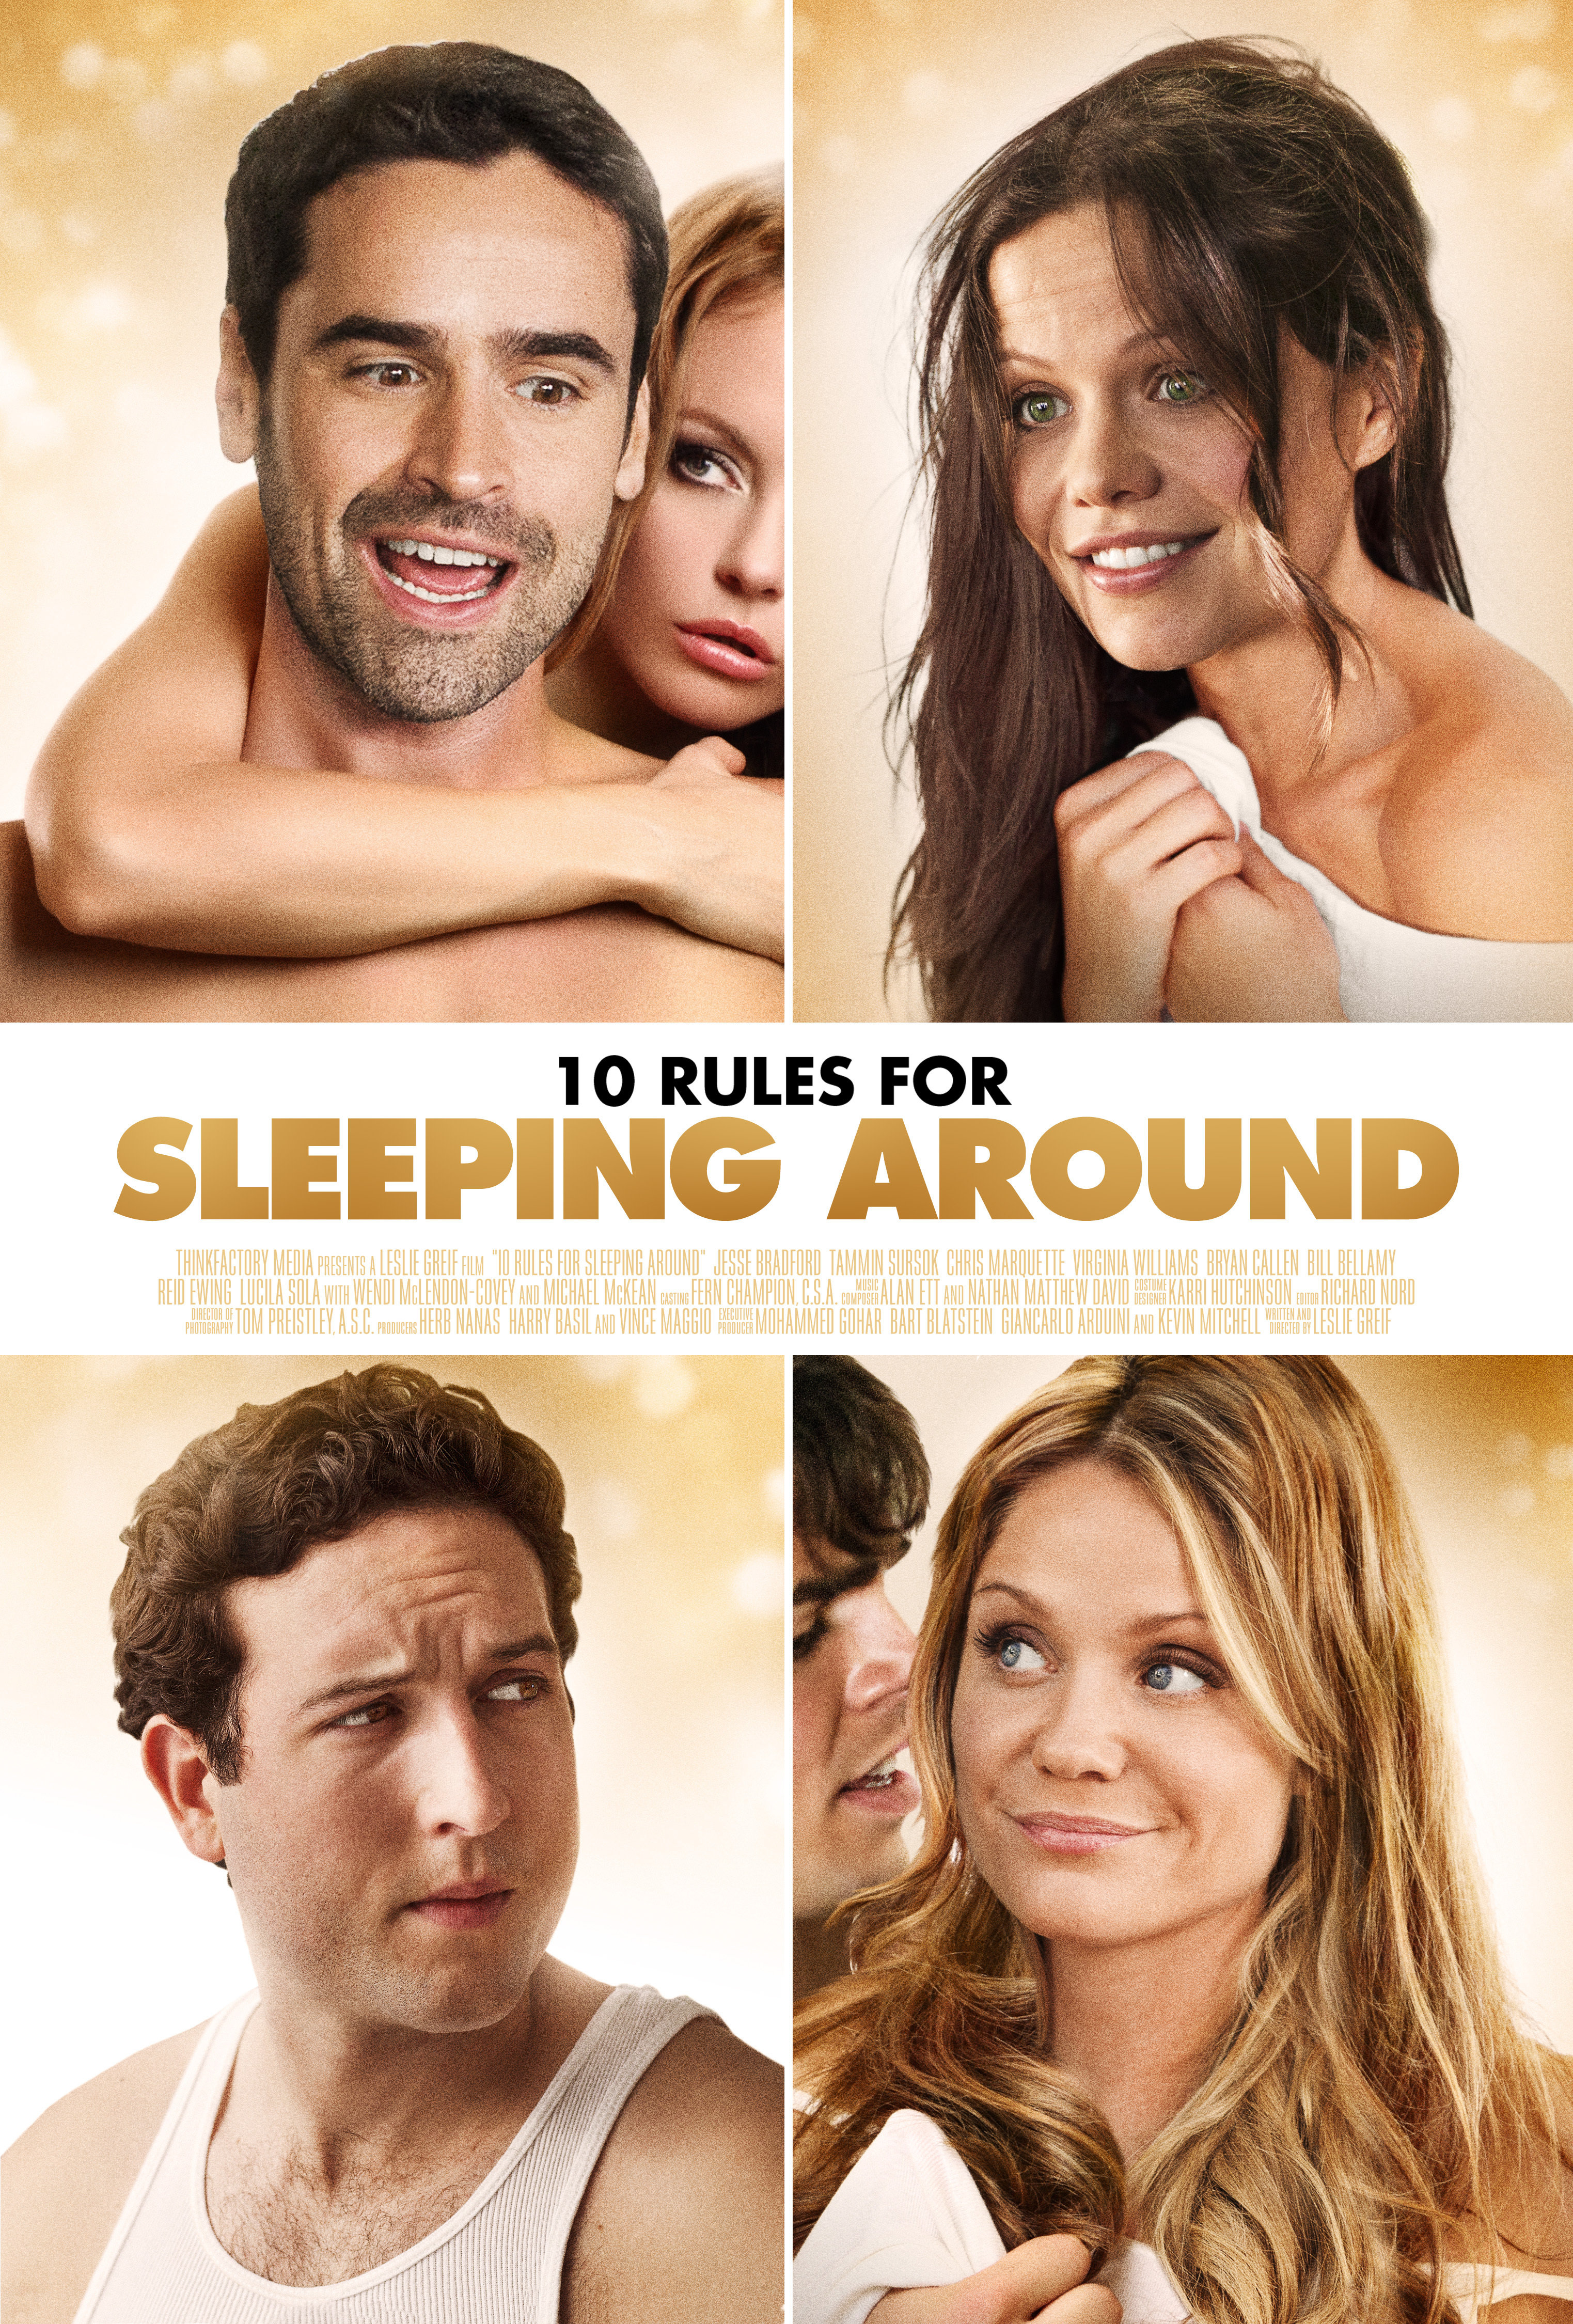 Jesse Bradford, Chris Marquette, Tammin Sursok, and Virginia Williams in 10 Rules for Sleeping Around (2013)